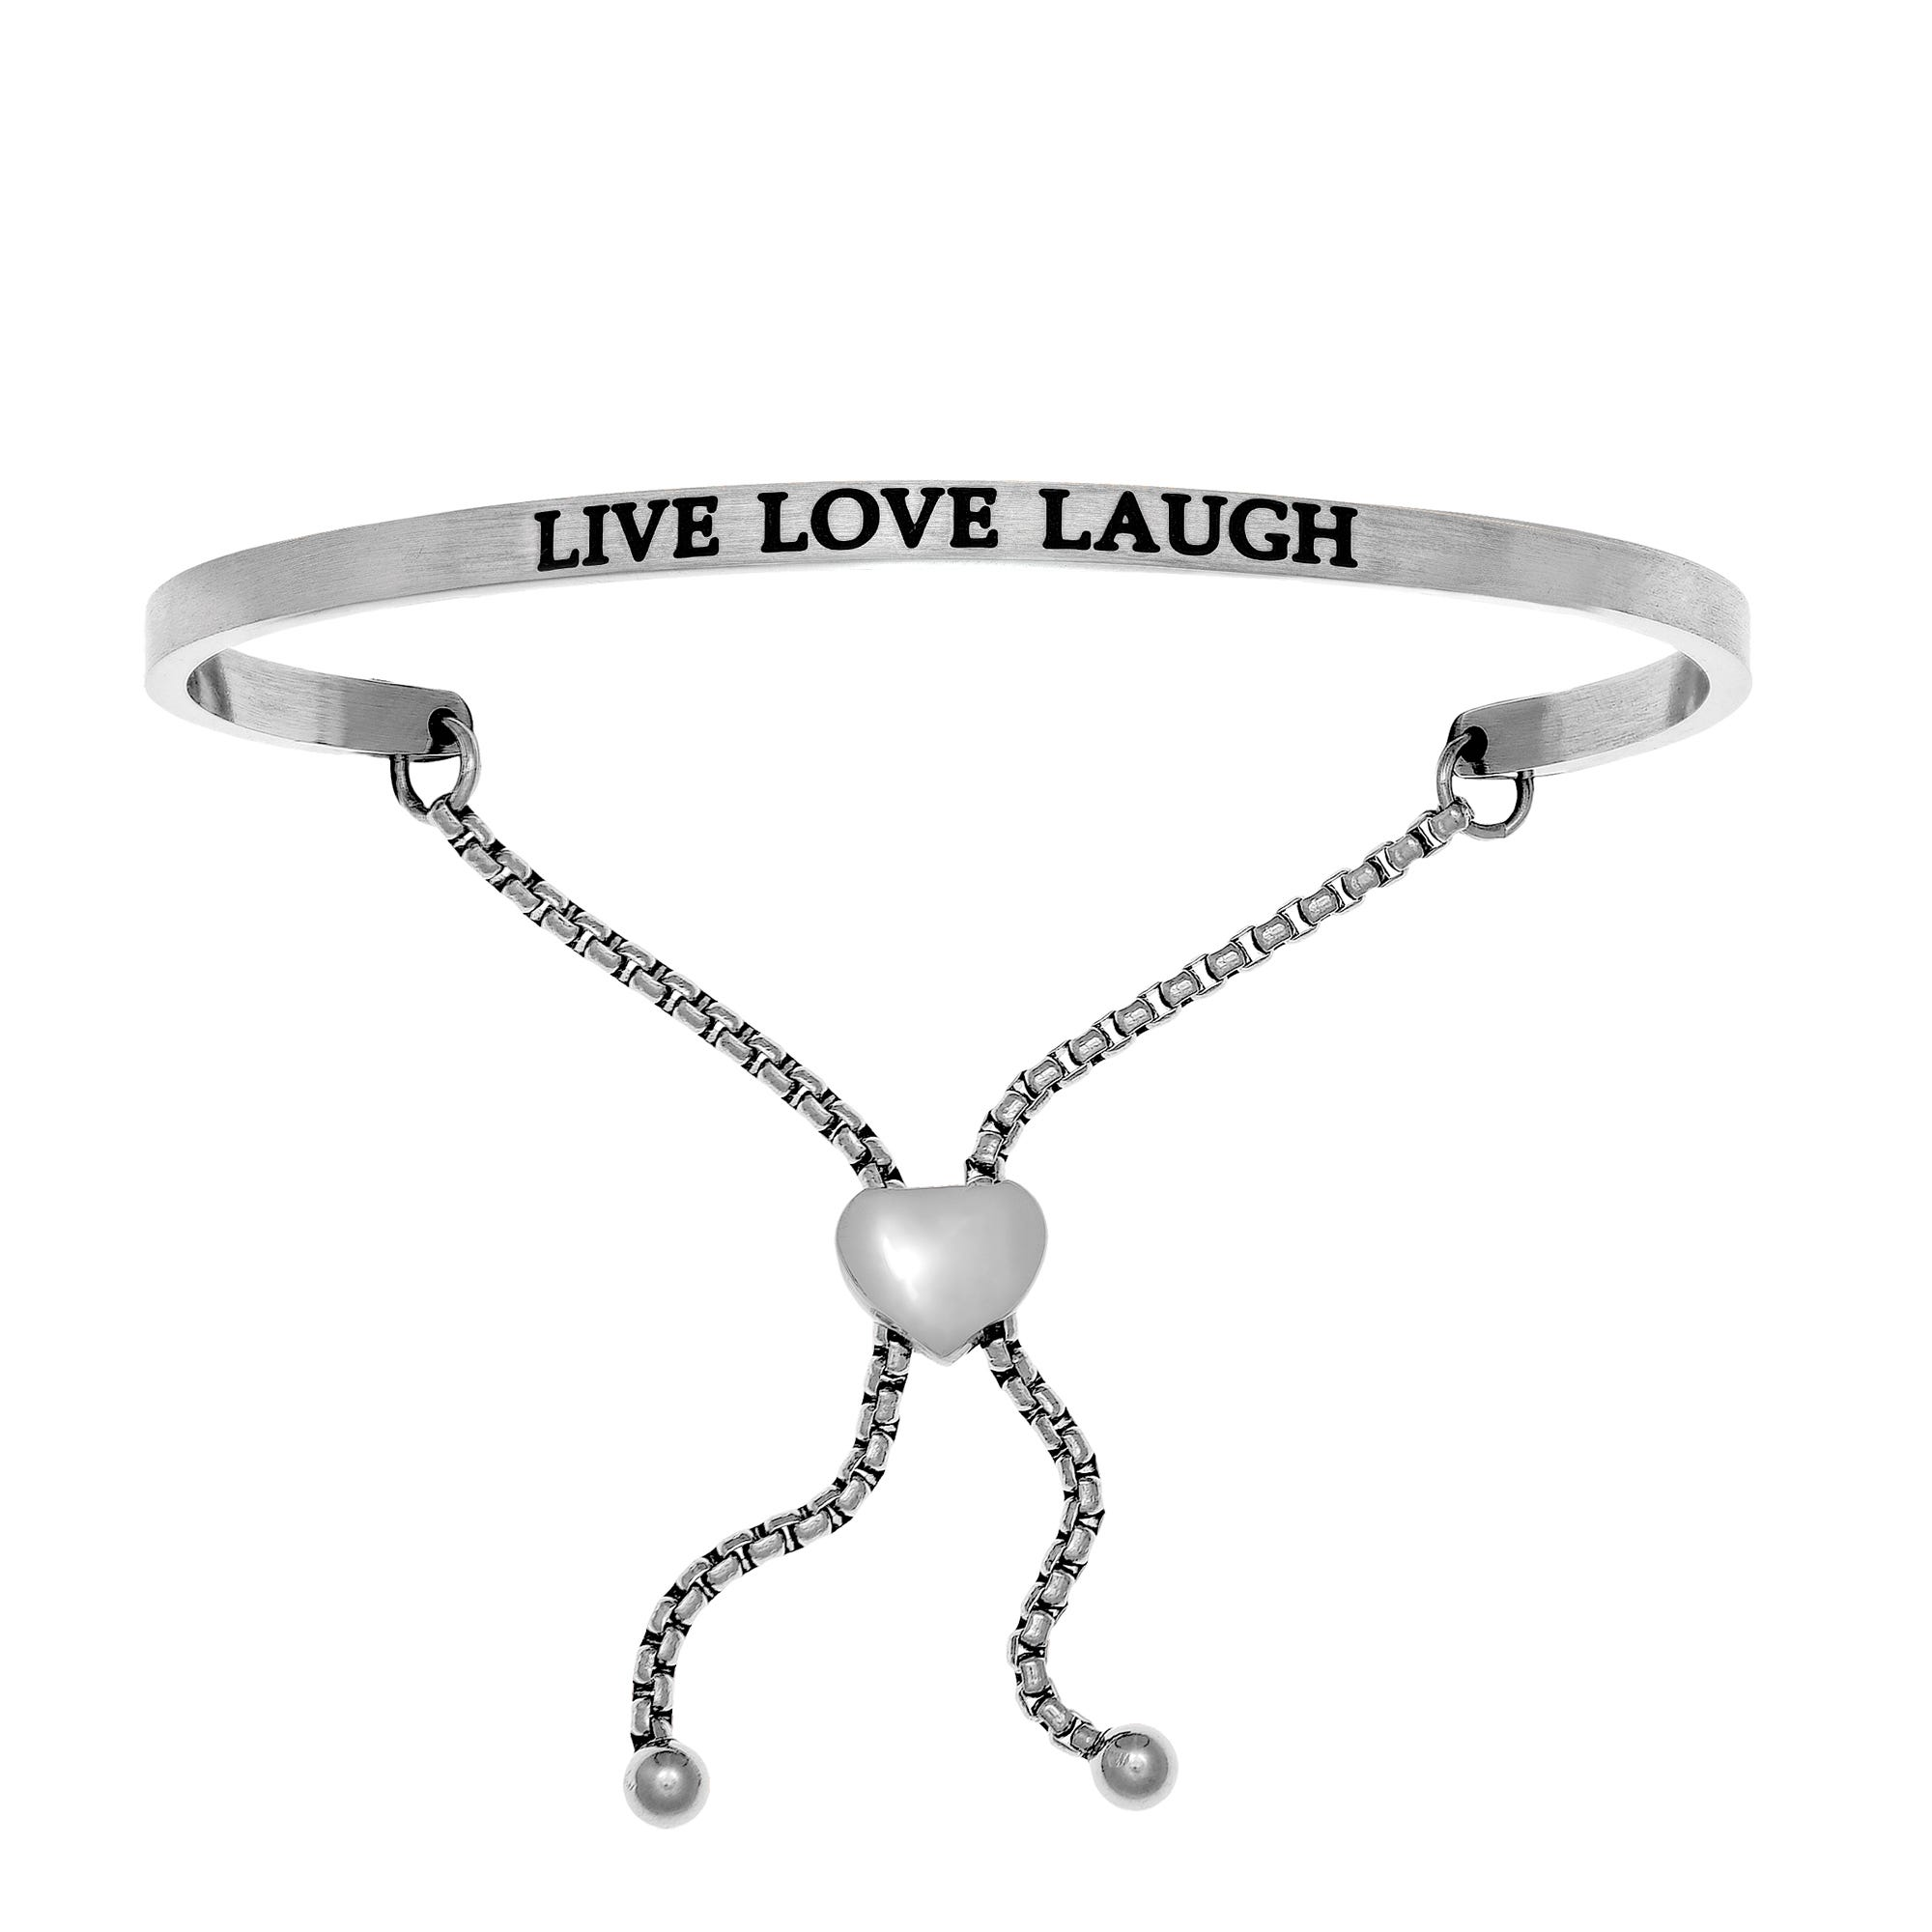 Live, Laugh, Love. Intuitions Bolo Bracelet in White Stainless Steel